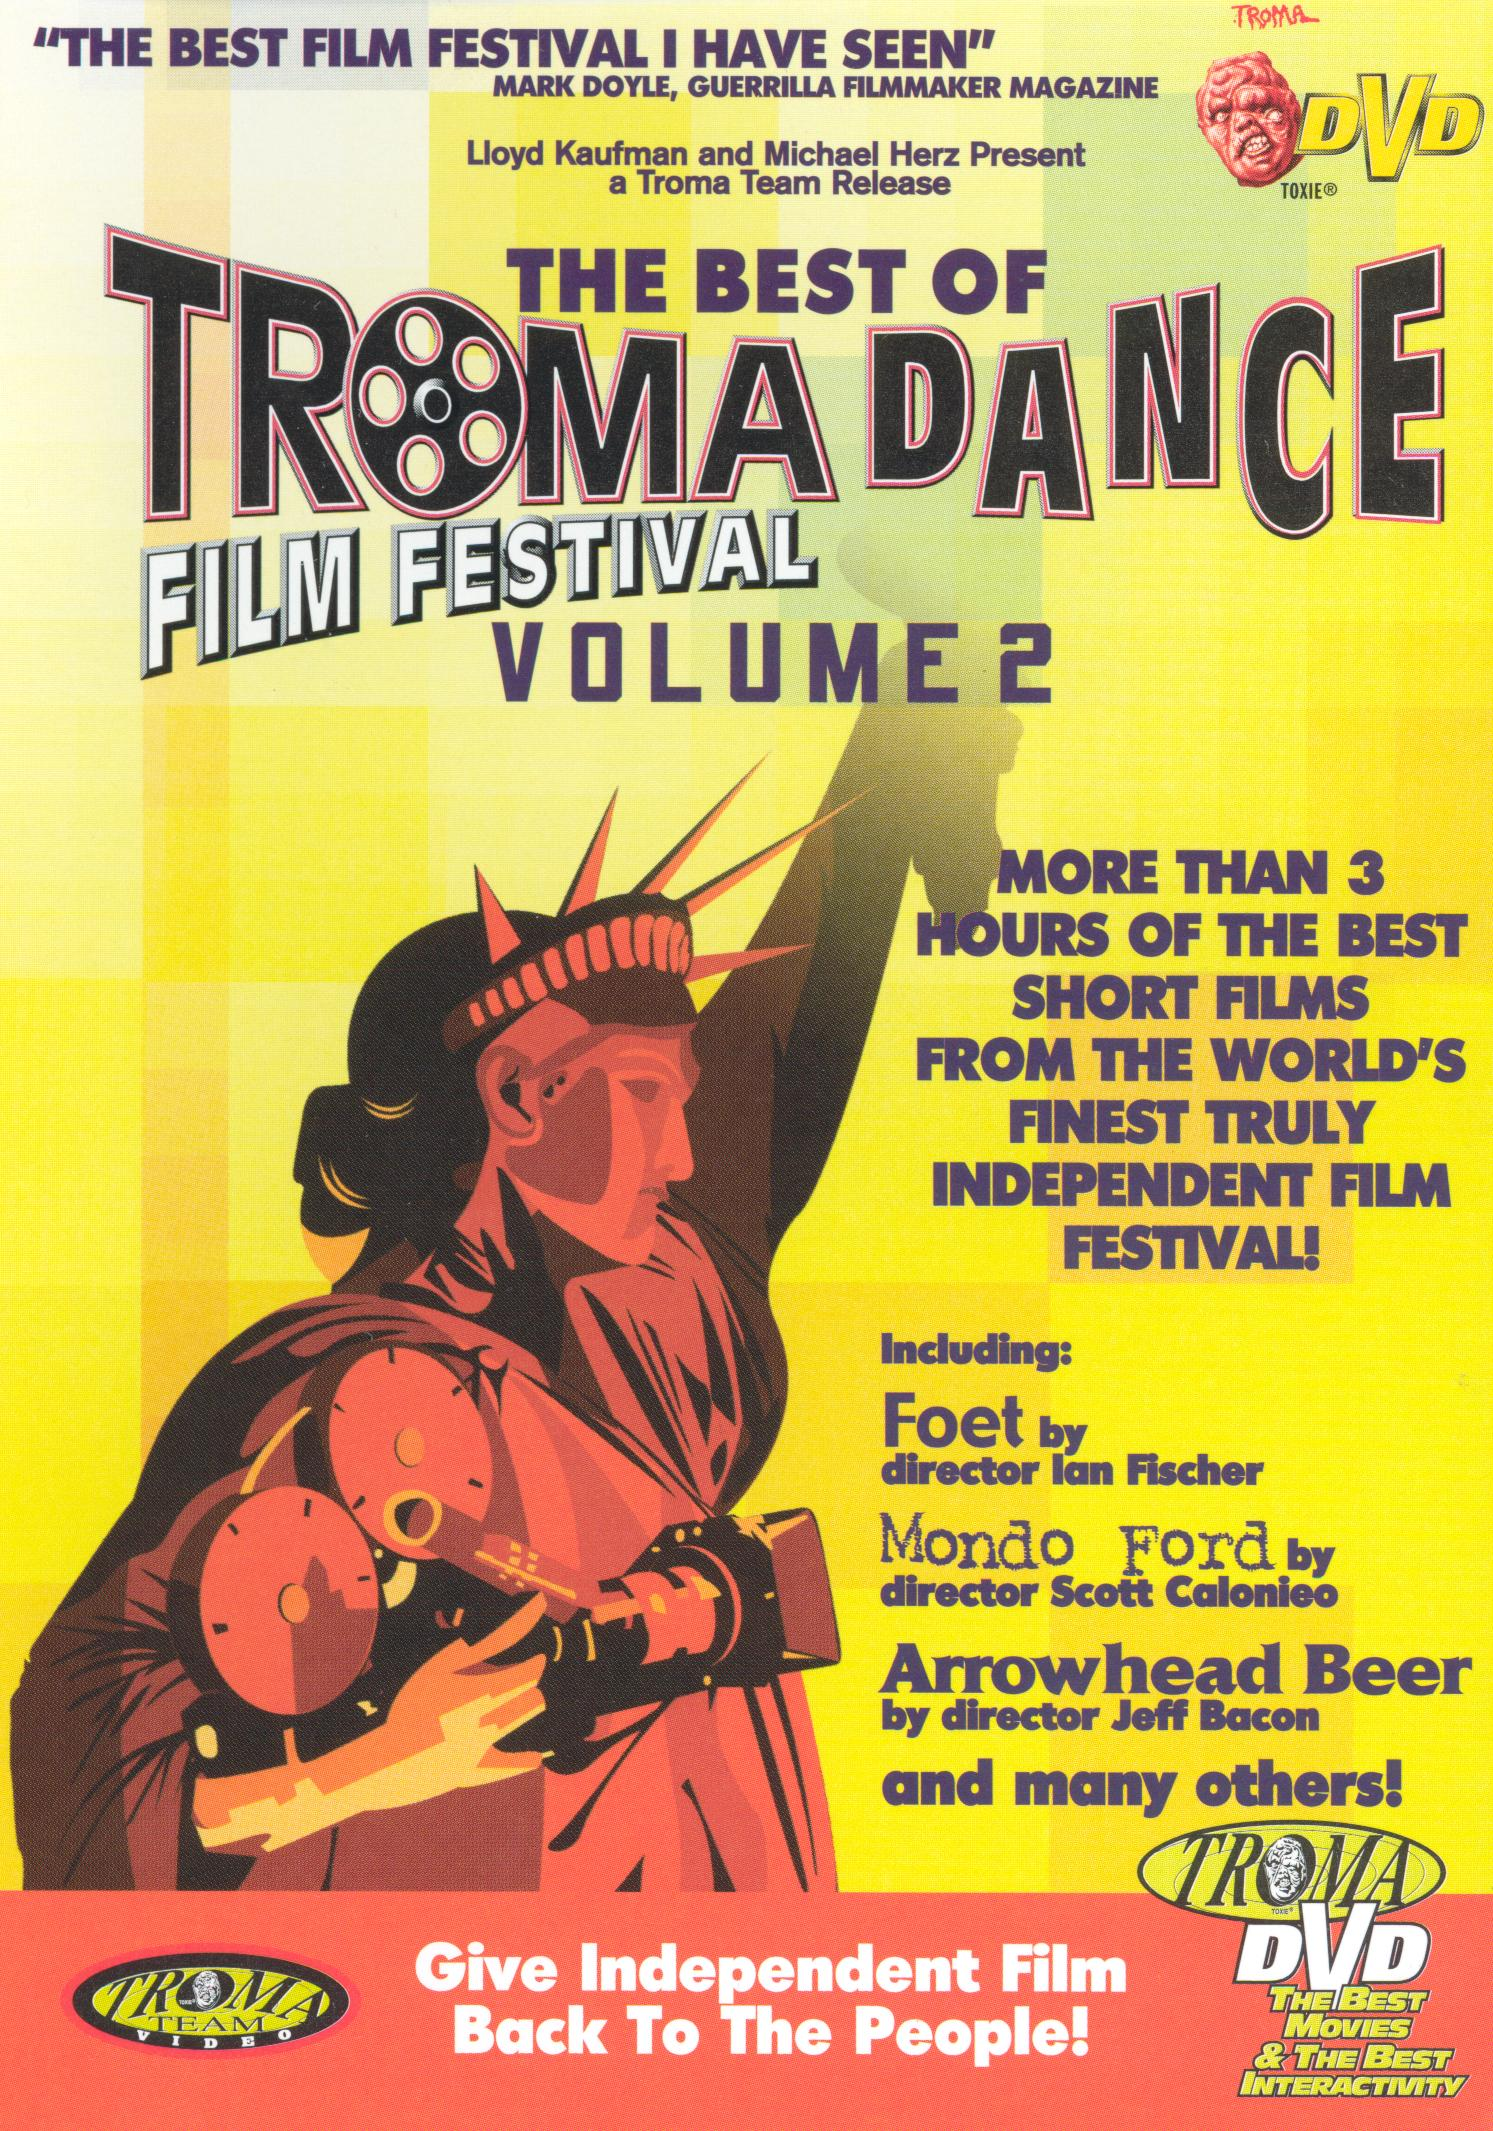 The Best of TromaDance Film Festival, Vol. 2